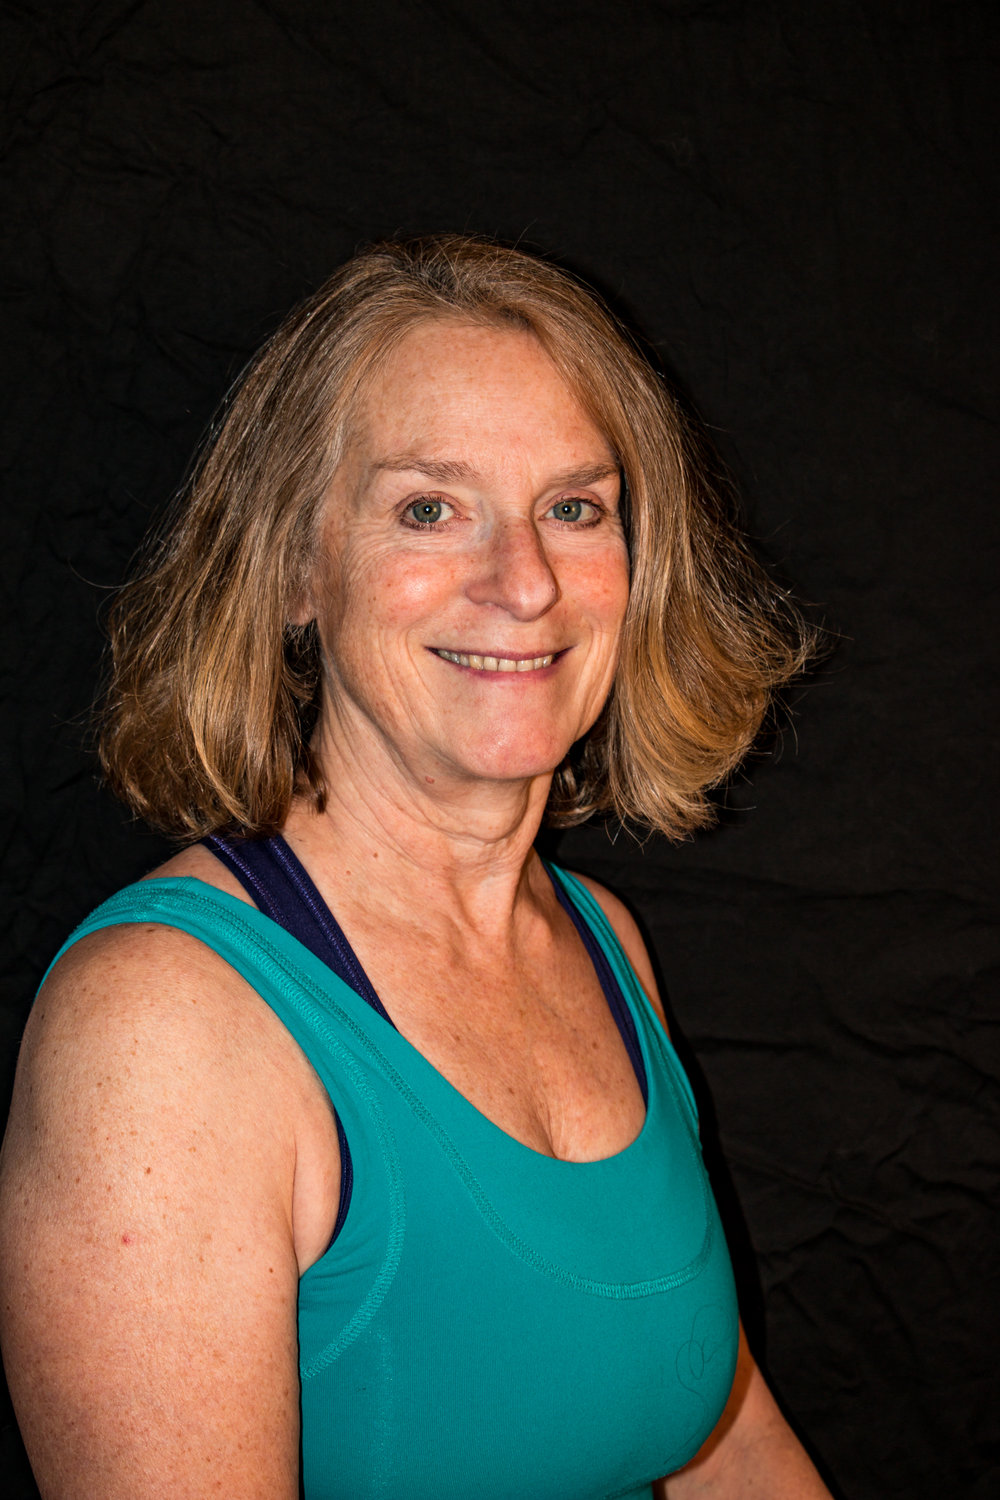 Lynne yoga instructor teacher Anchorage